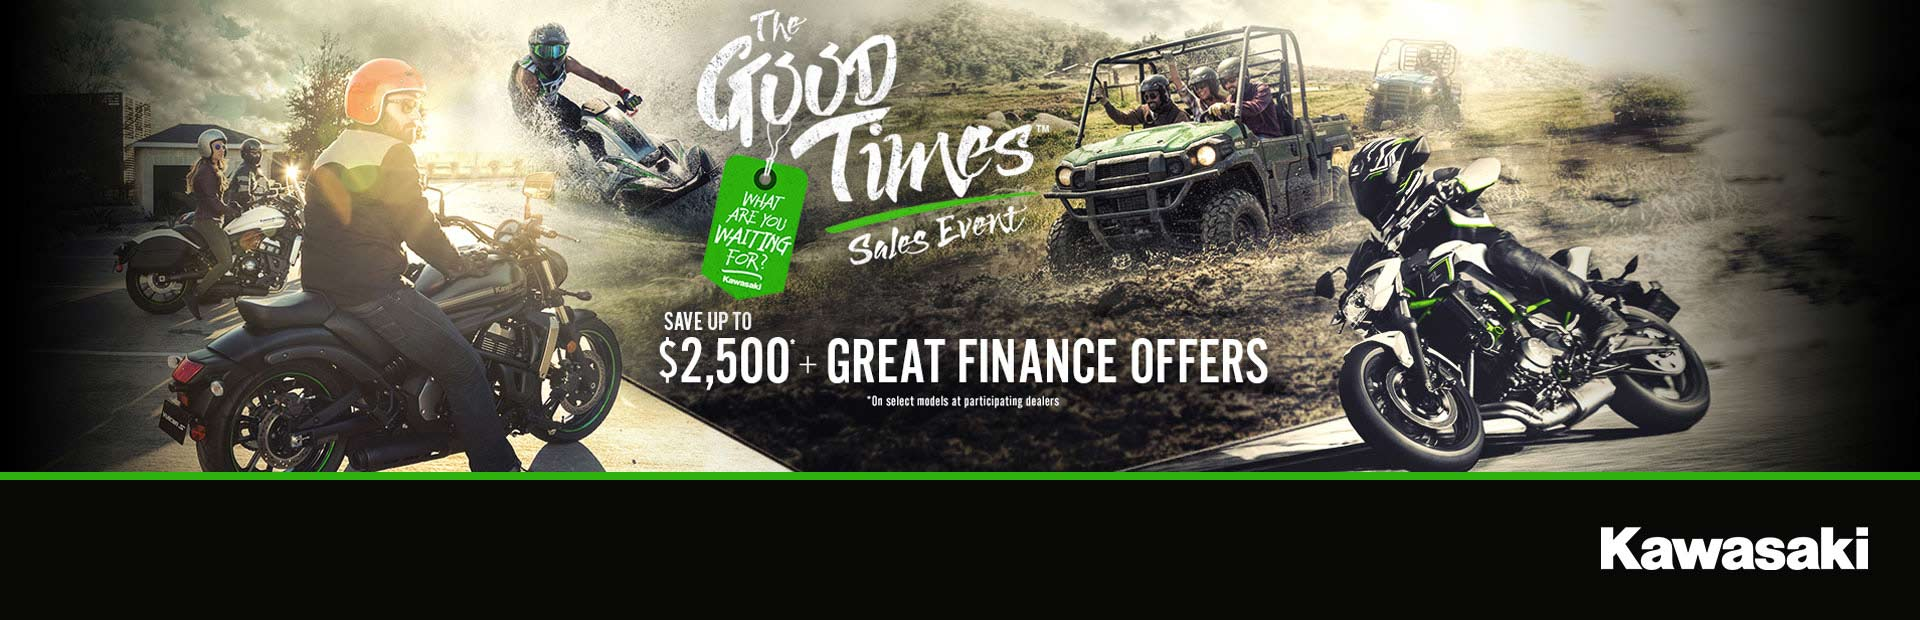 Kawasaki: Good Times Sales Event